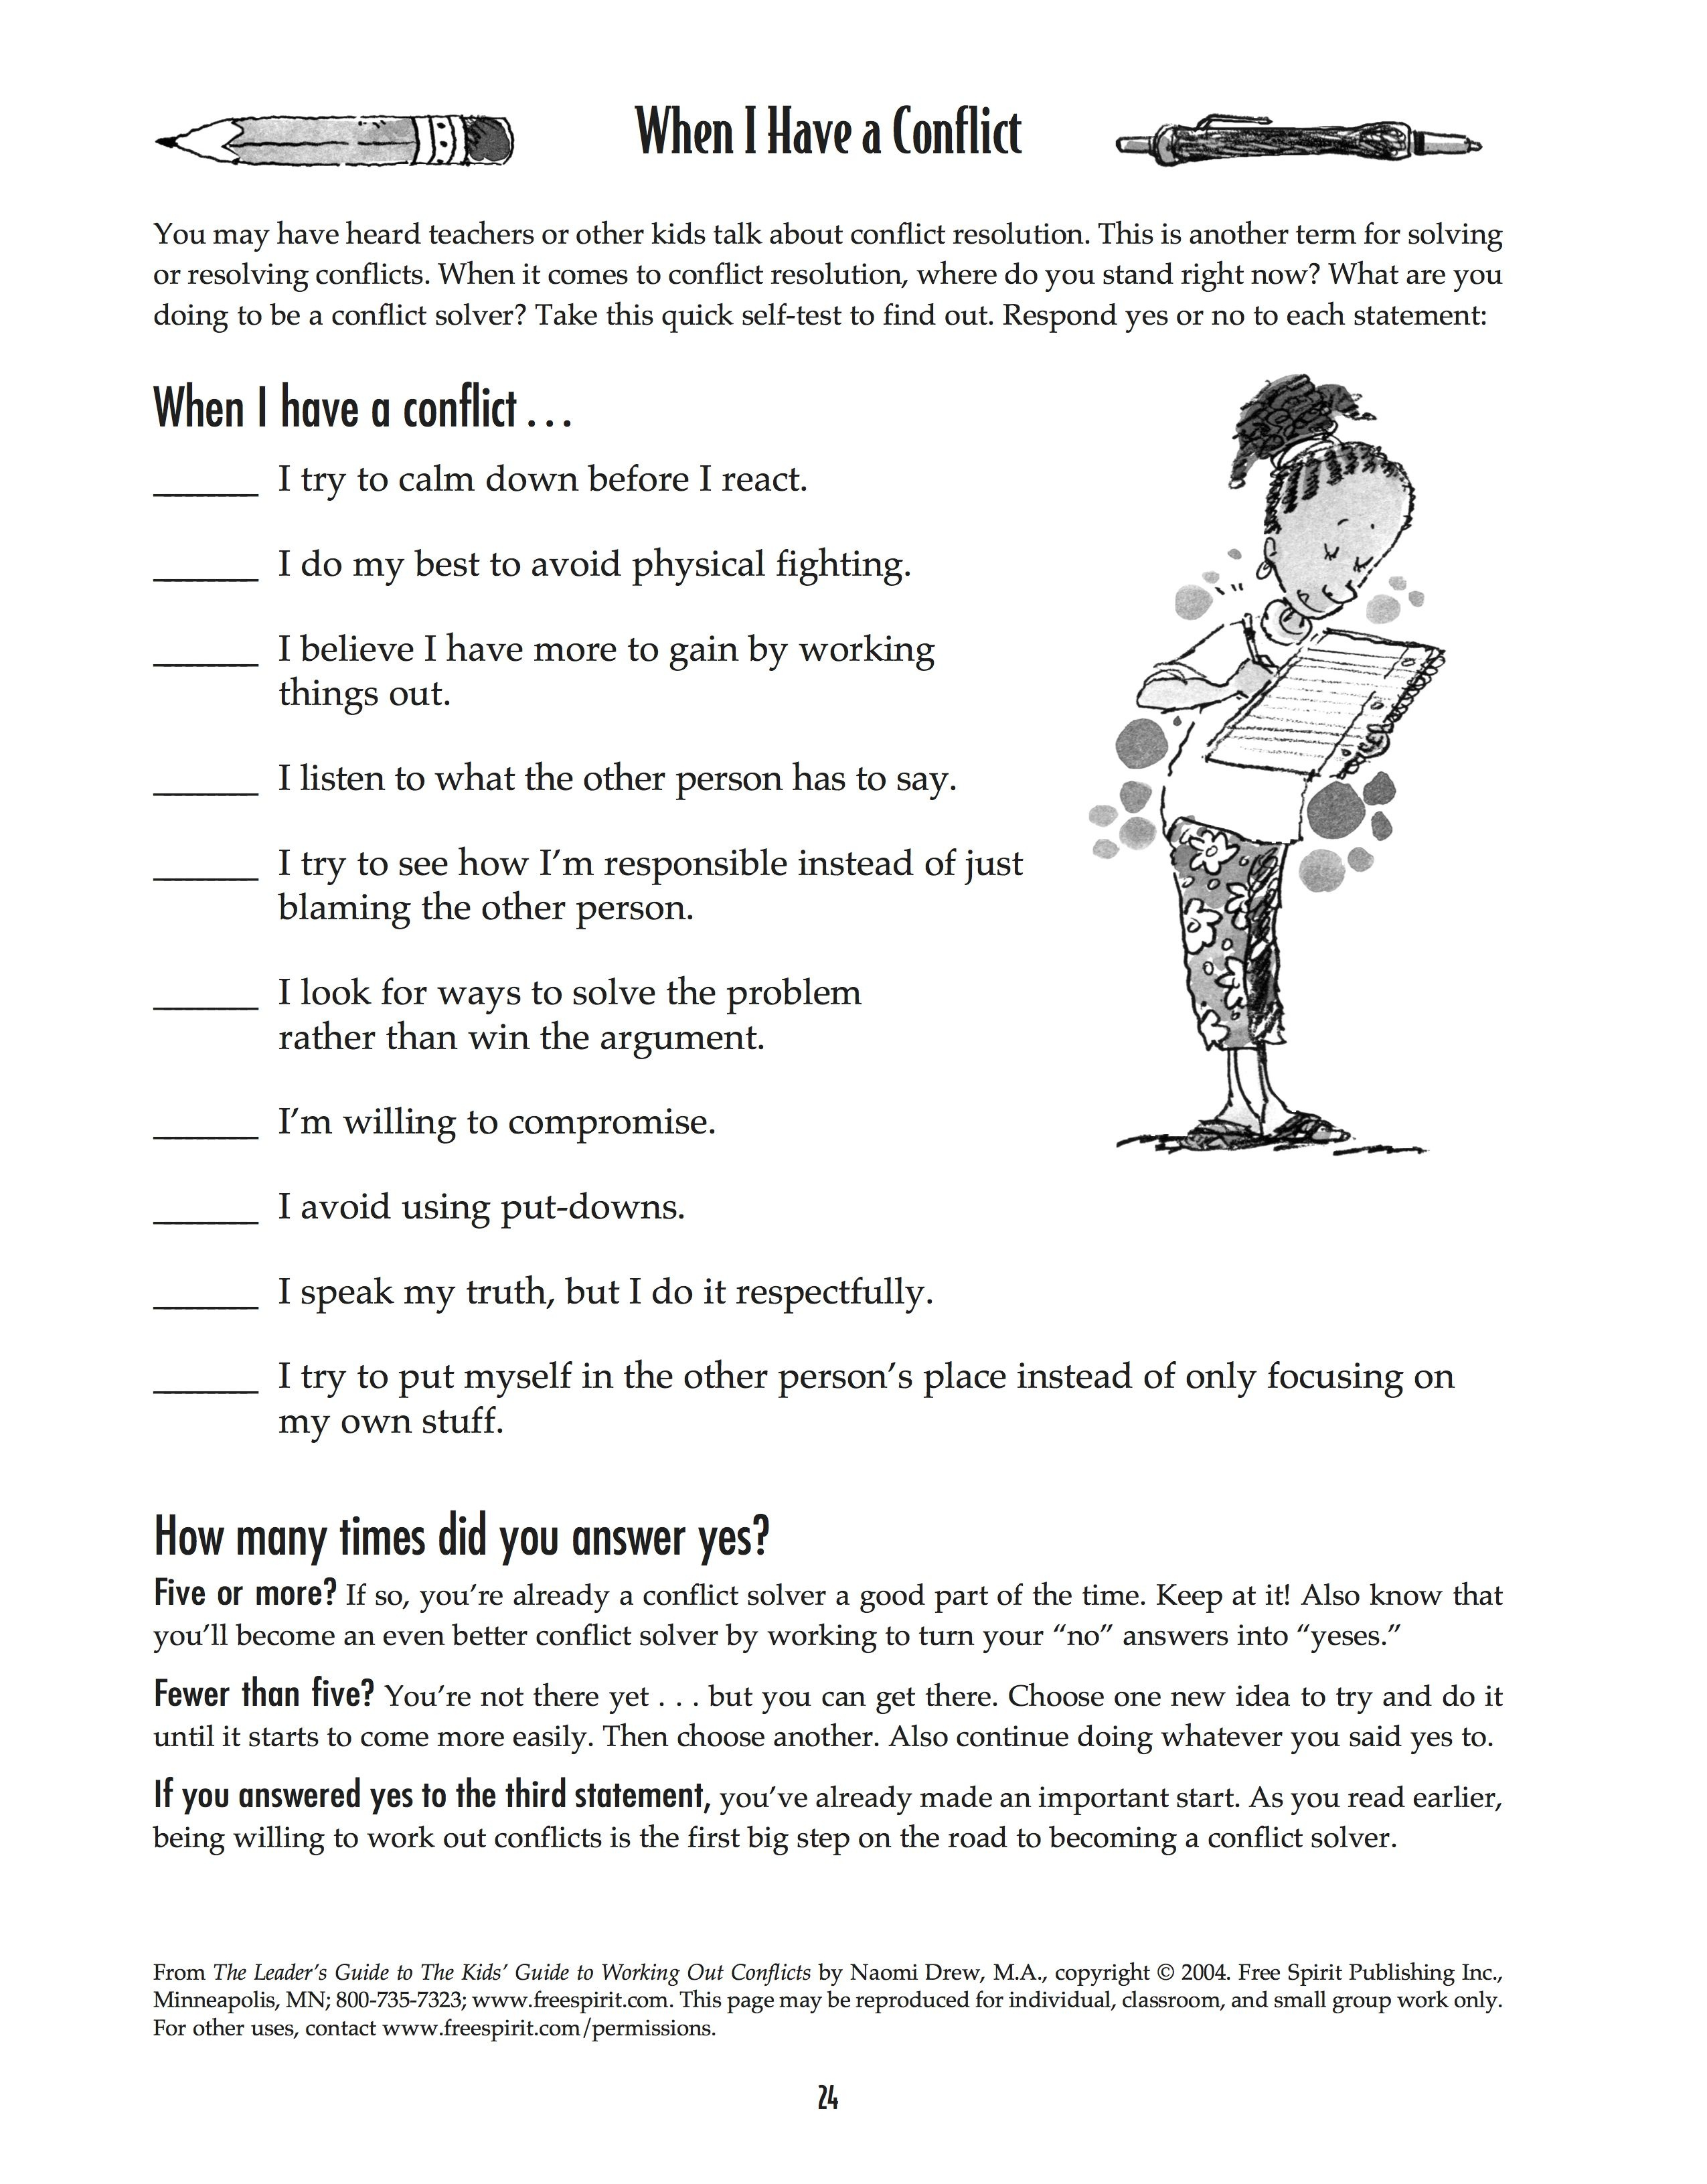 Free Printable Worksheet: When I Have A Conflict. A Quick Self-Test - Free Printable Activities For Adults